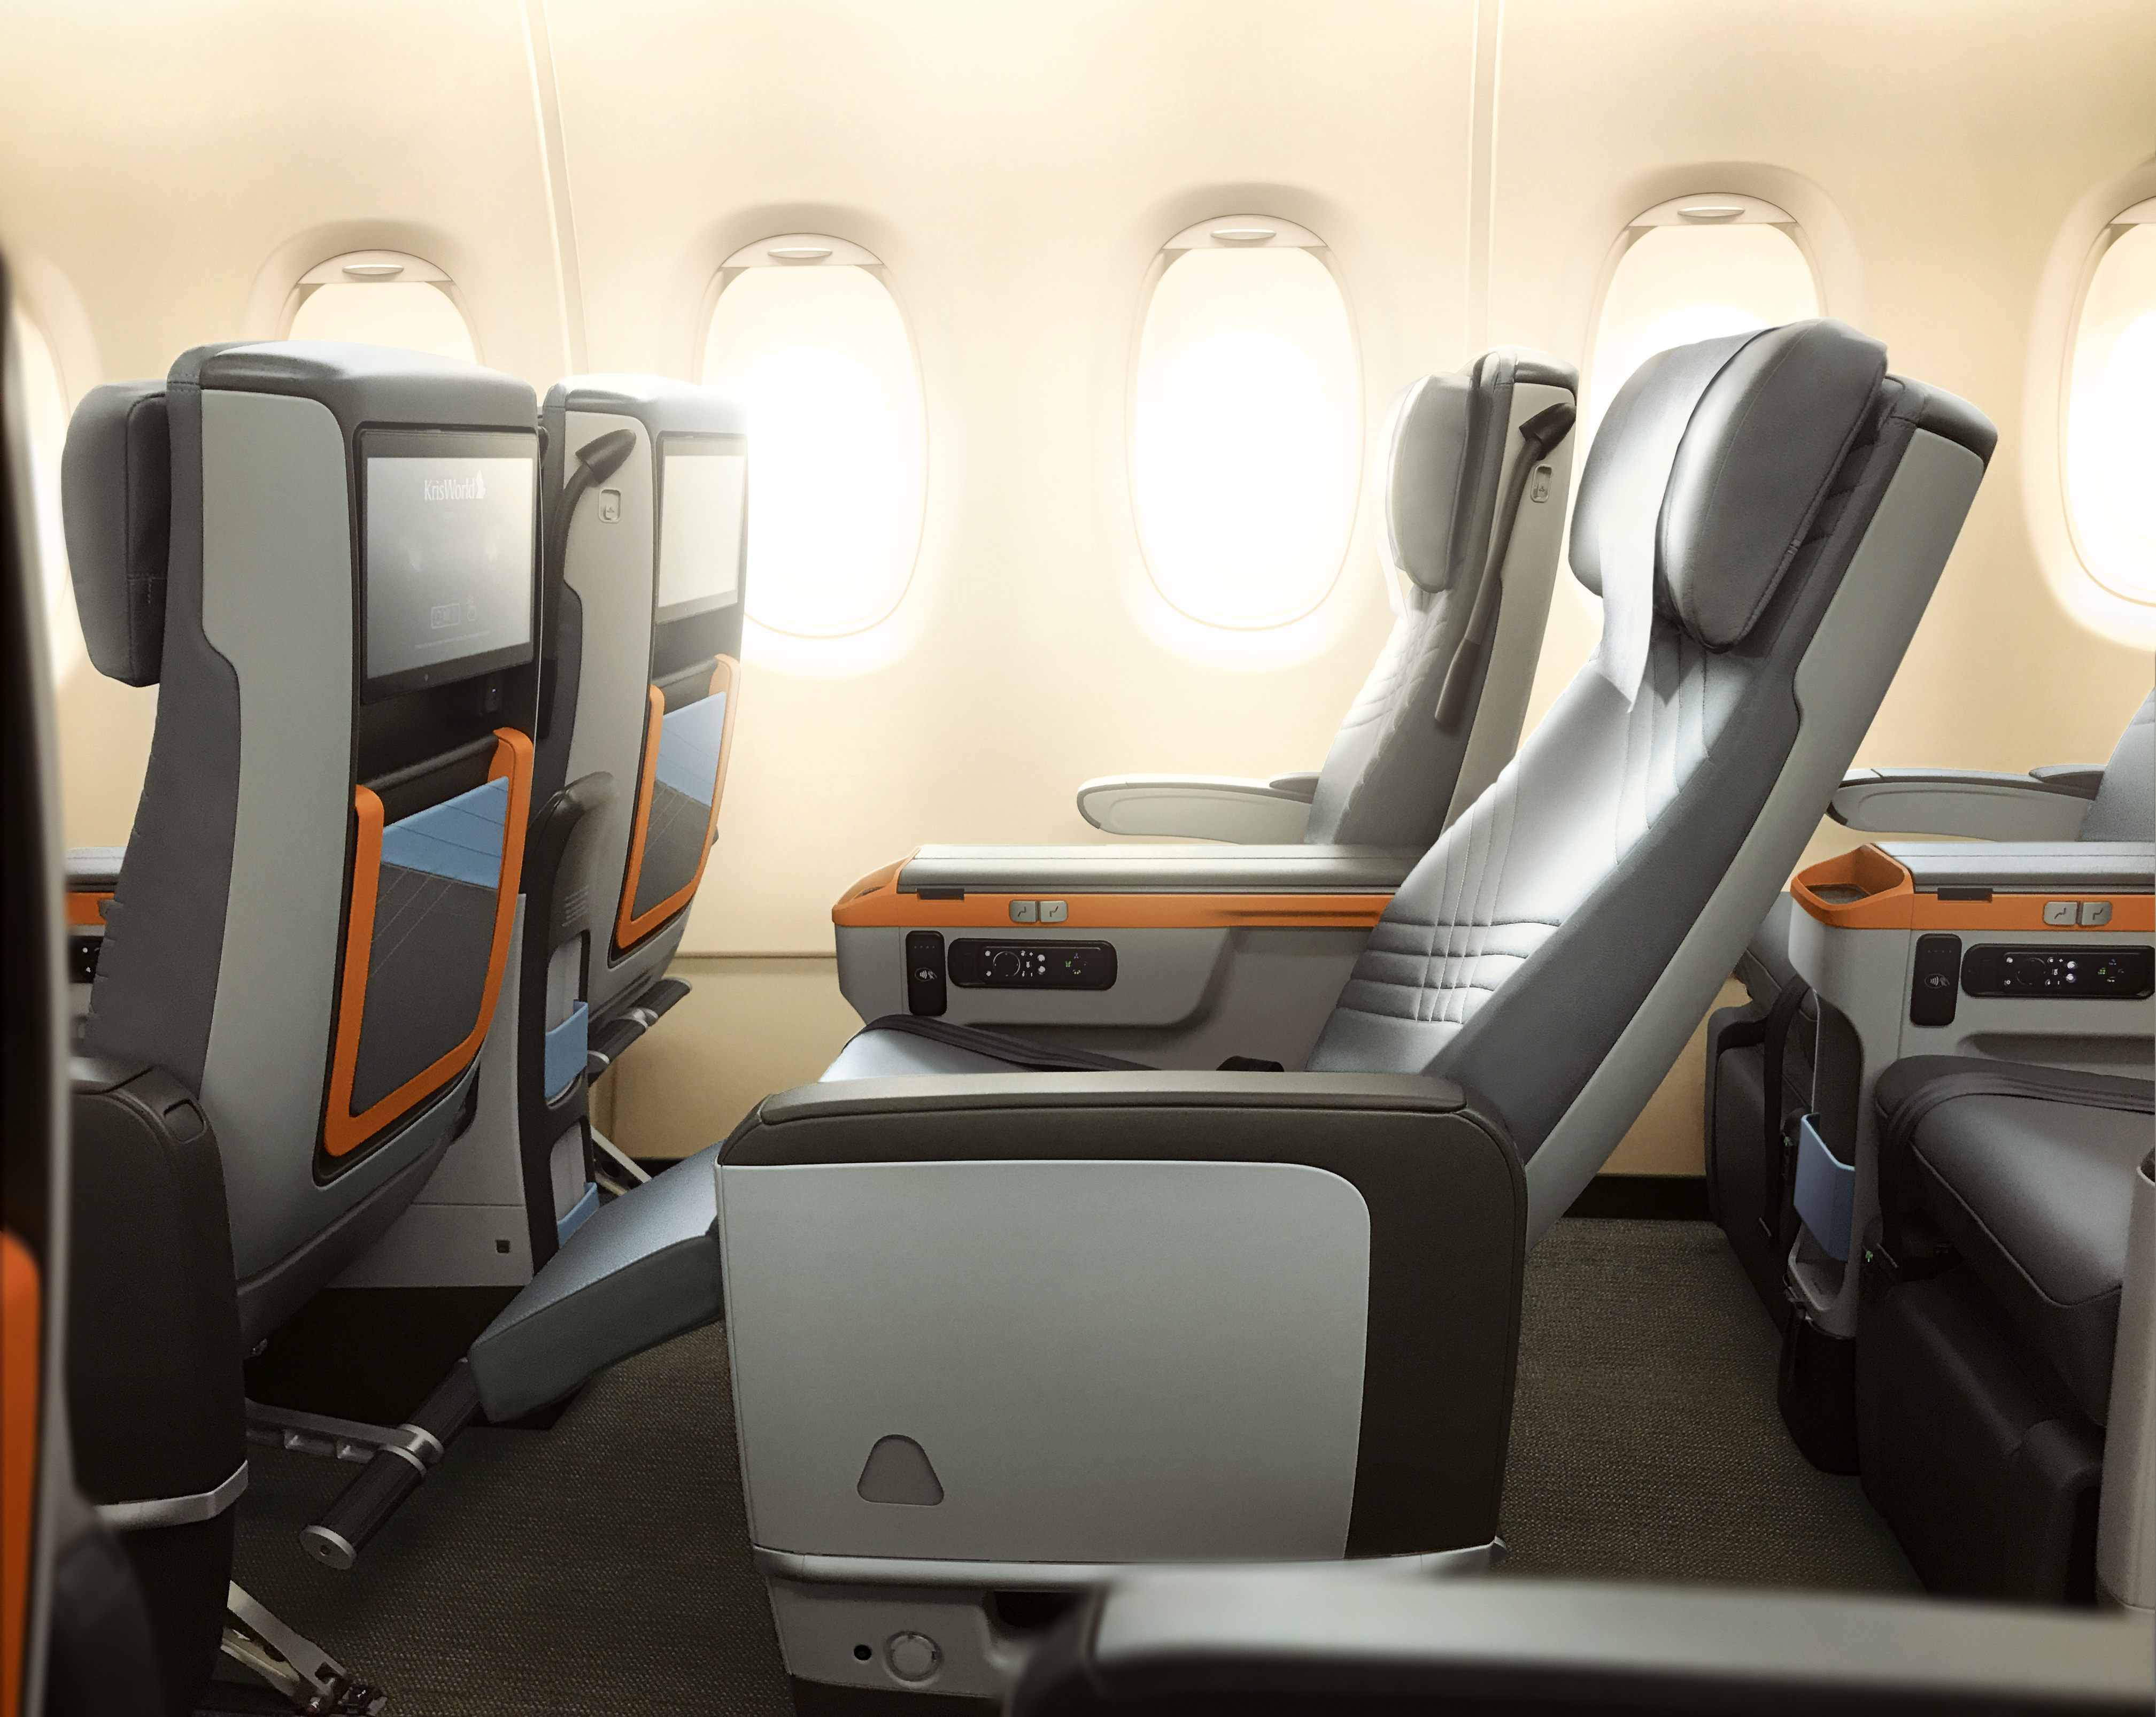 premium economy class_01?w=710 the first aircraft, bearing the uae registration mark a6  at love-stories.co